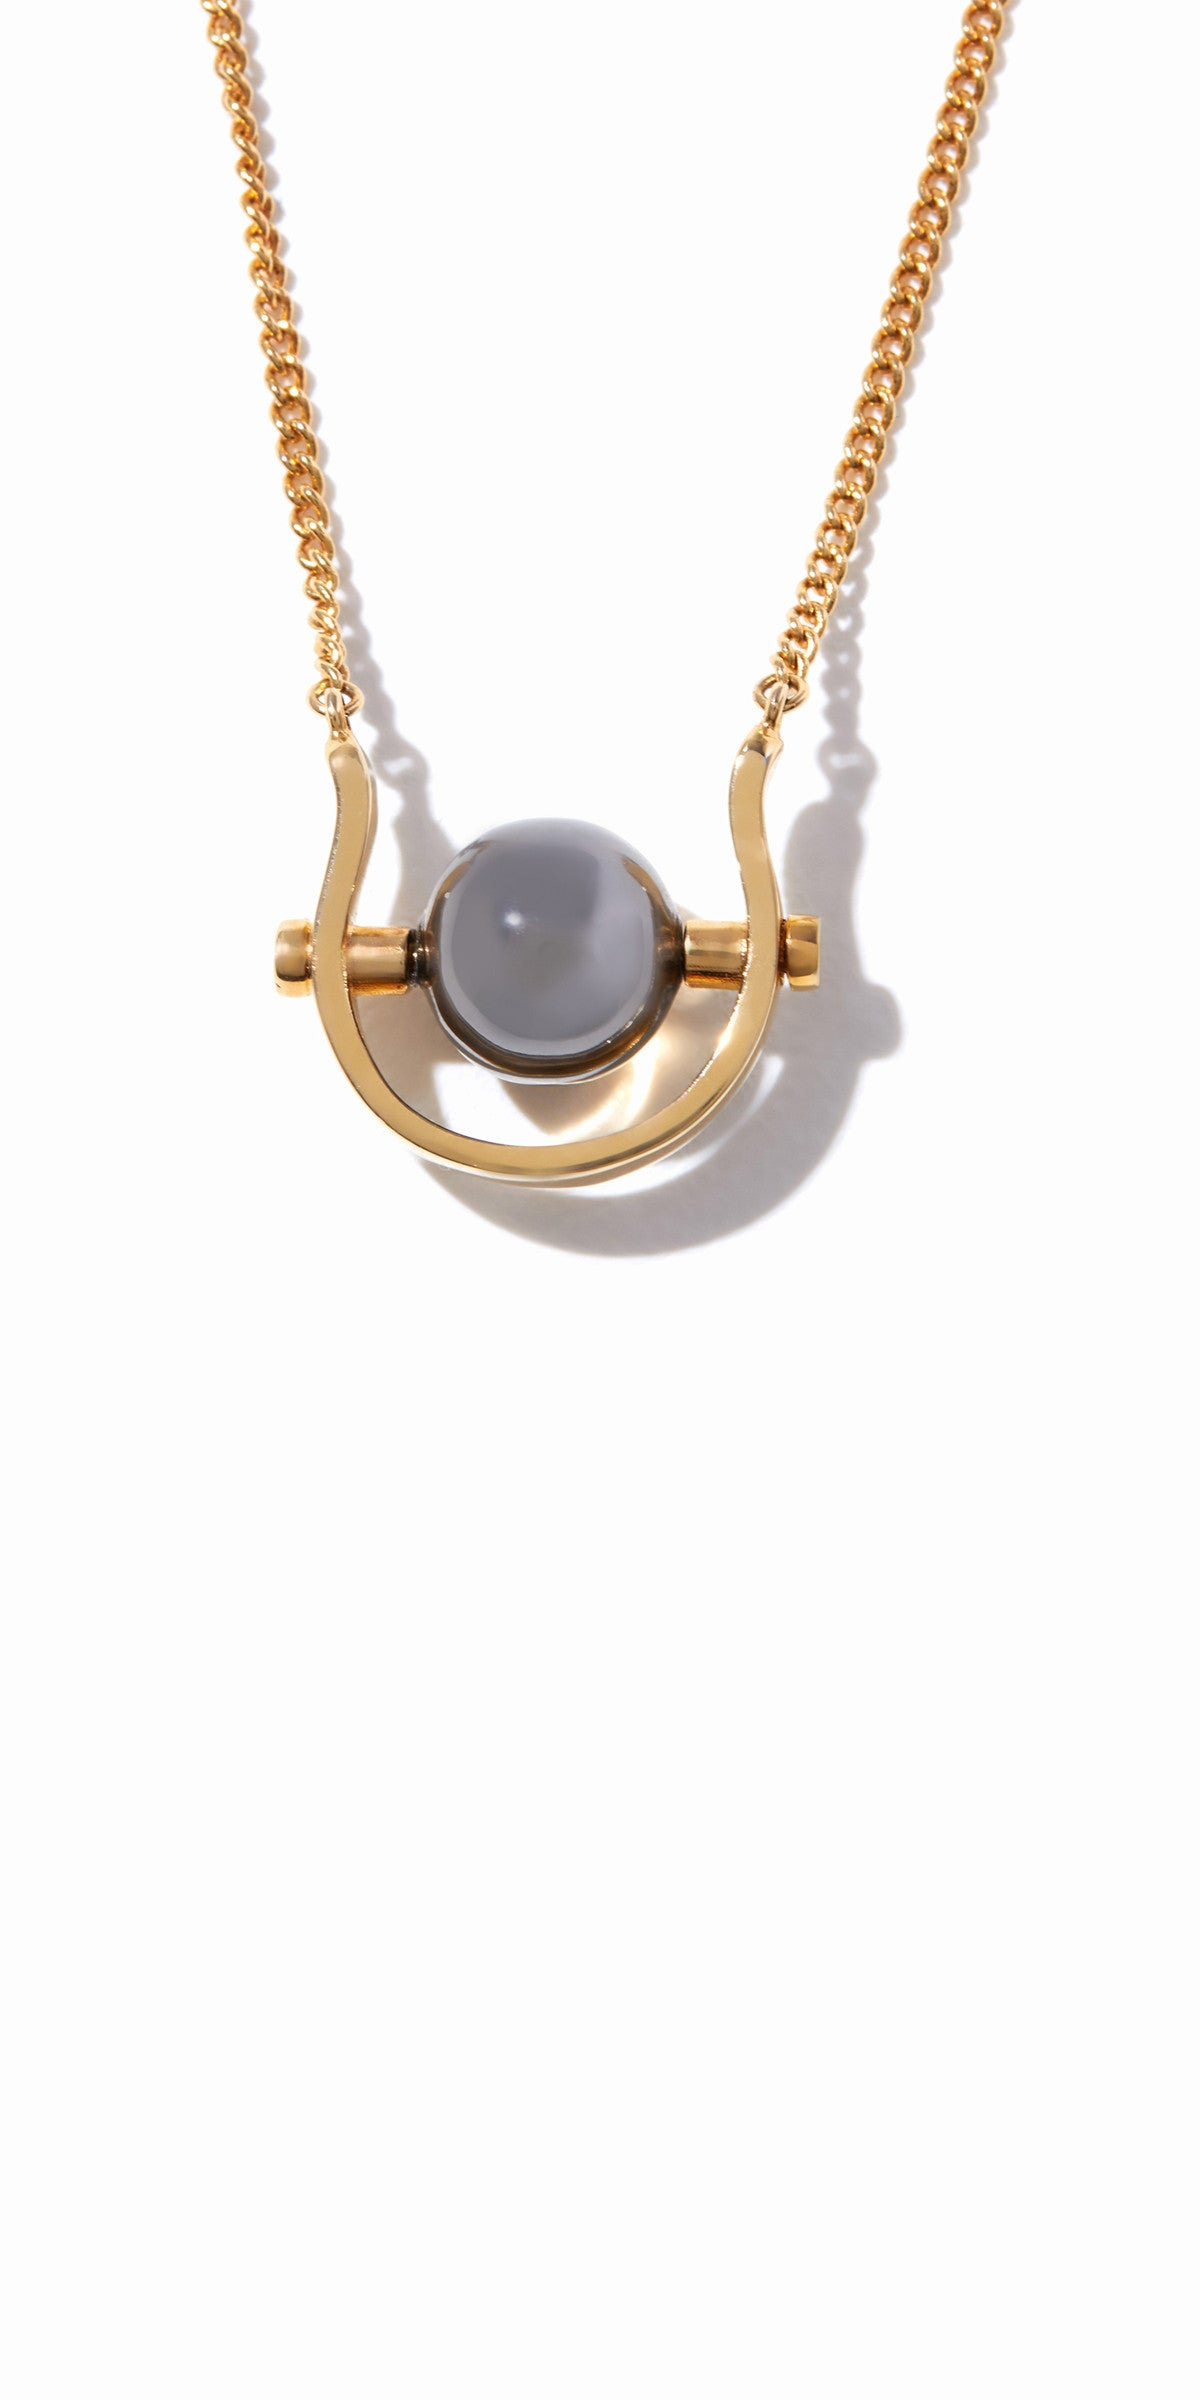 Sixtine Sphere Pendant - 2 Tone Gold and Hematite